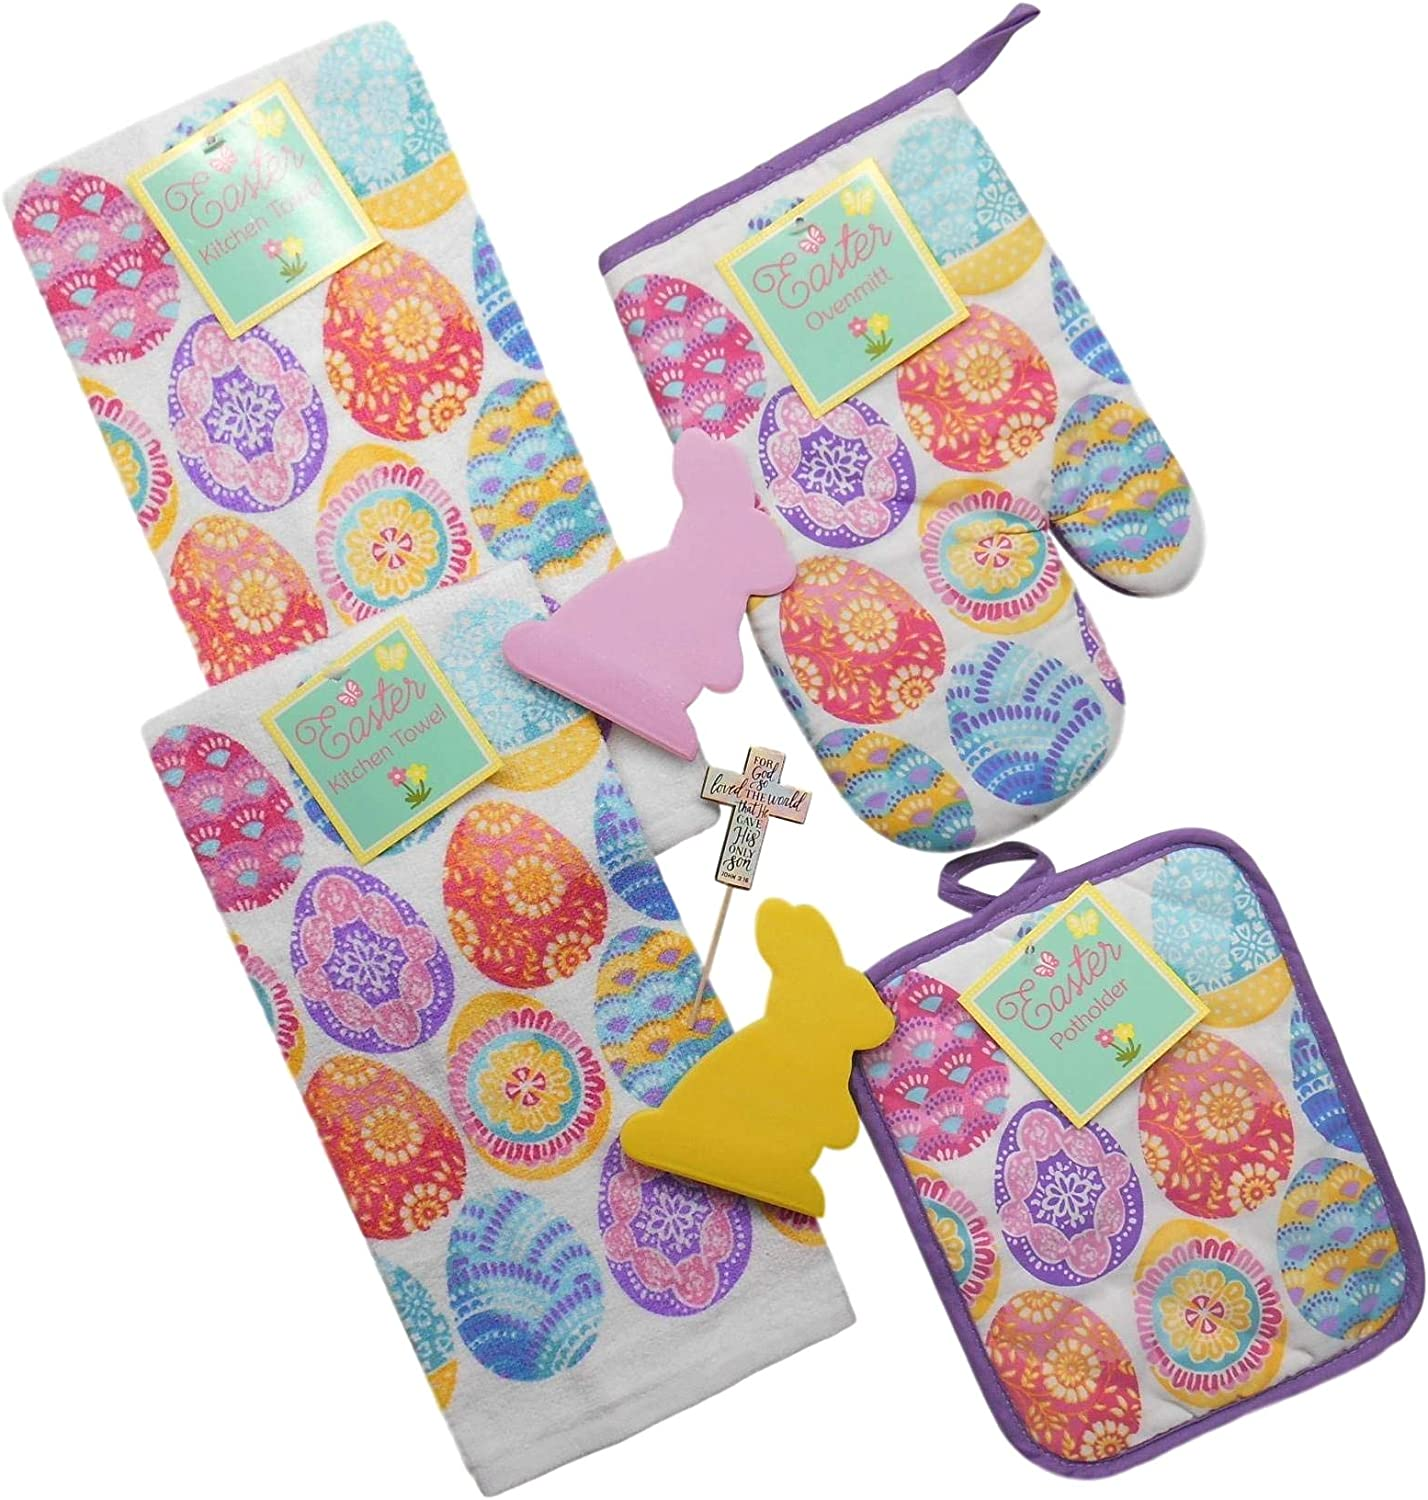 Easter Decorative Eggs Kitchen Dish Towels Set - Includes 2 Towels, 1 Pot Holder, 1 Oven Mitt, 2 Rabbit-Shaped Sticky Notes and a Pastel Cross Pick with John 3:16 Reminder of Season (7 pcs)